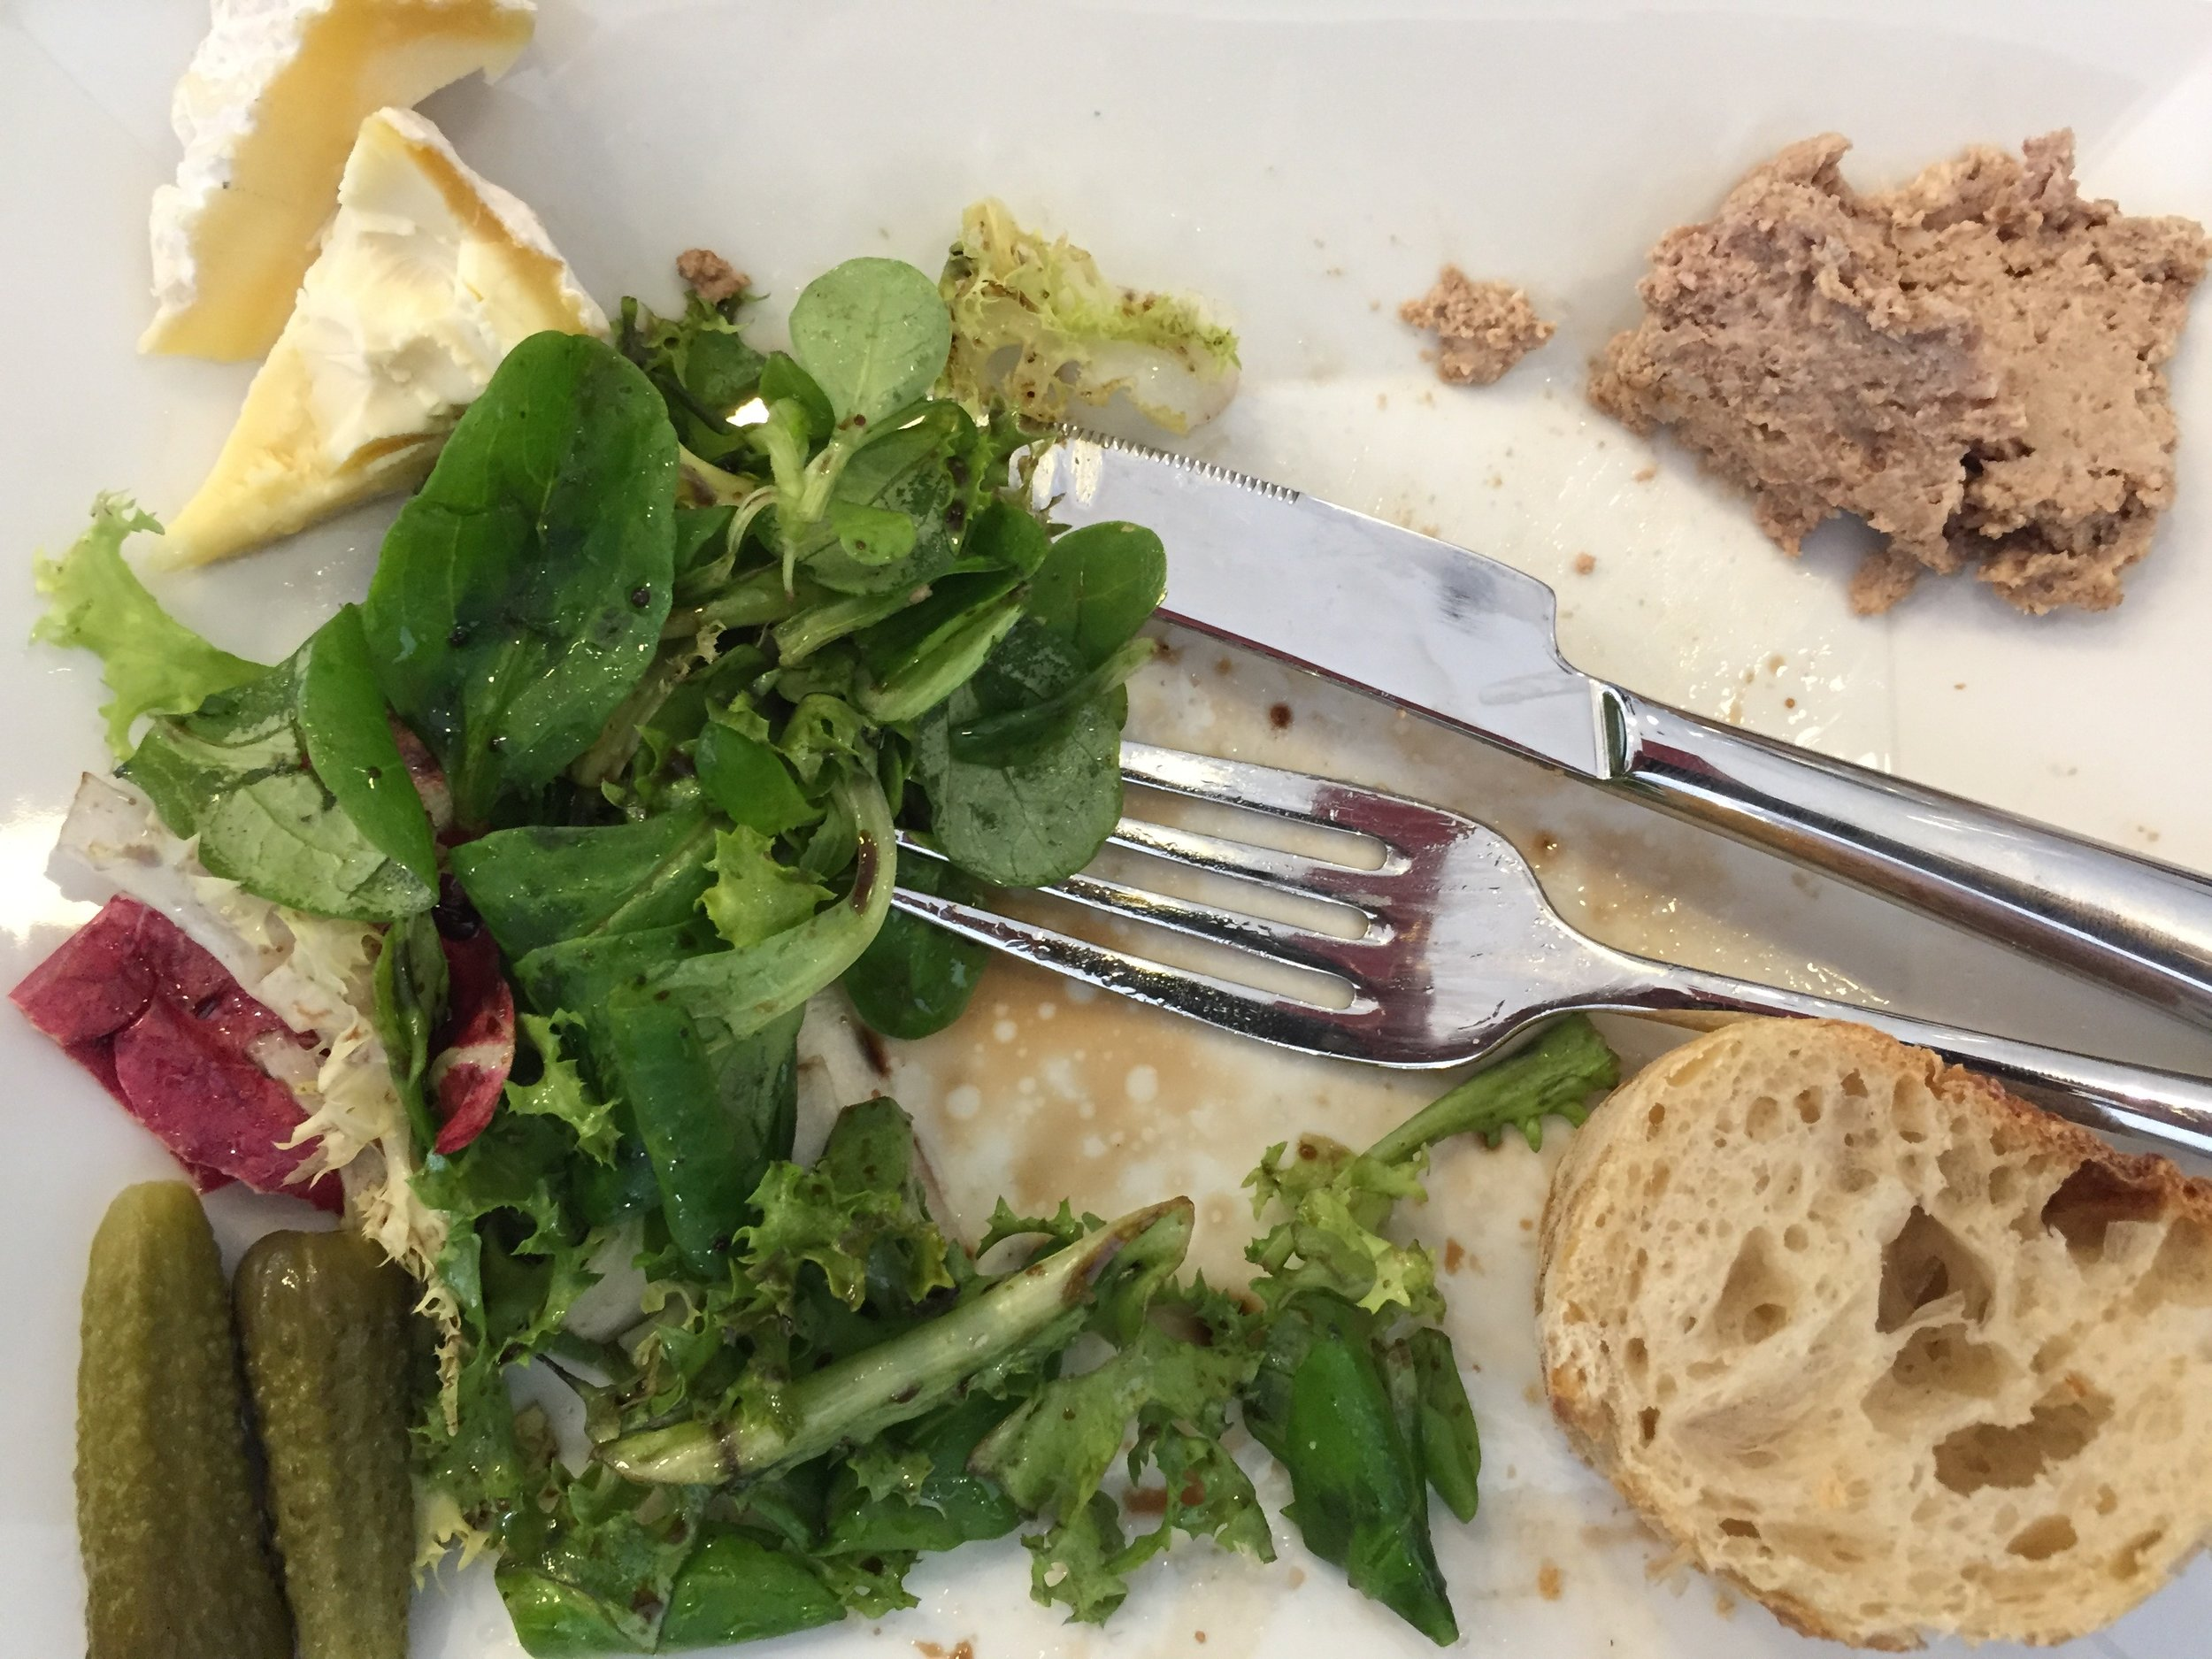 our 'picnic' lunch at the winery - a delicious salad of mache and frisee, cornichon, fresh bread, local chevre, and several kinds of pork and duck rillette. Plus lots and lots of wine.